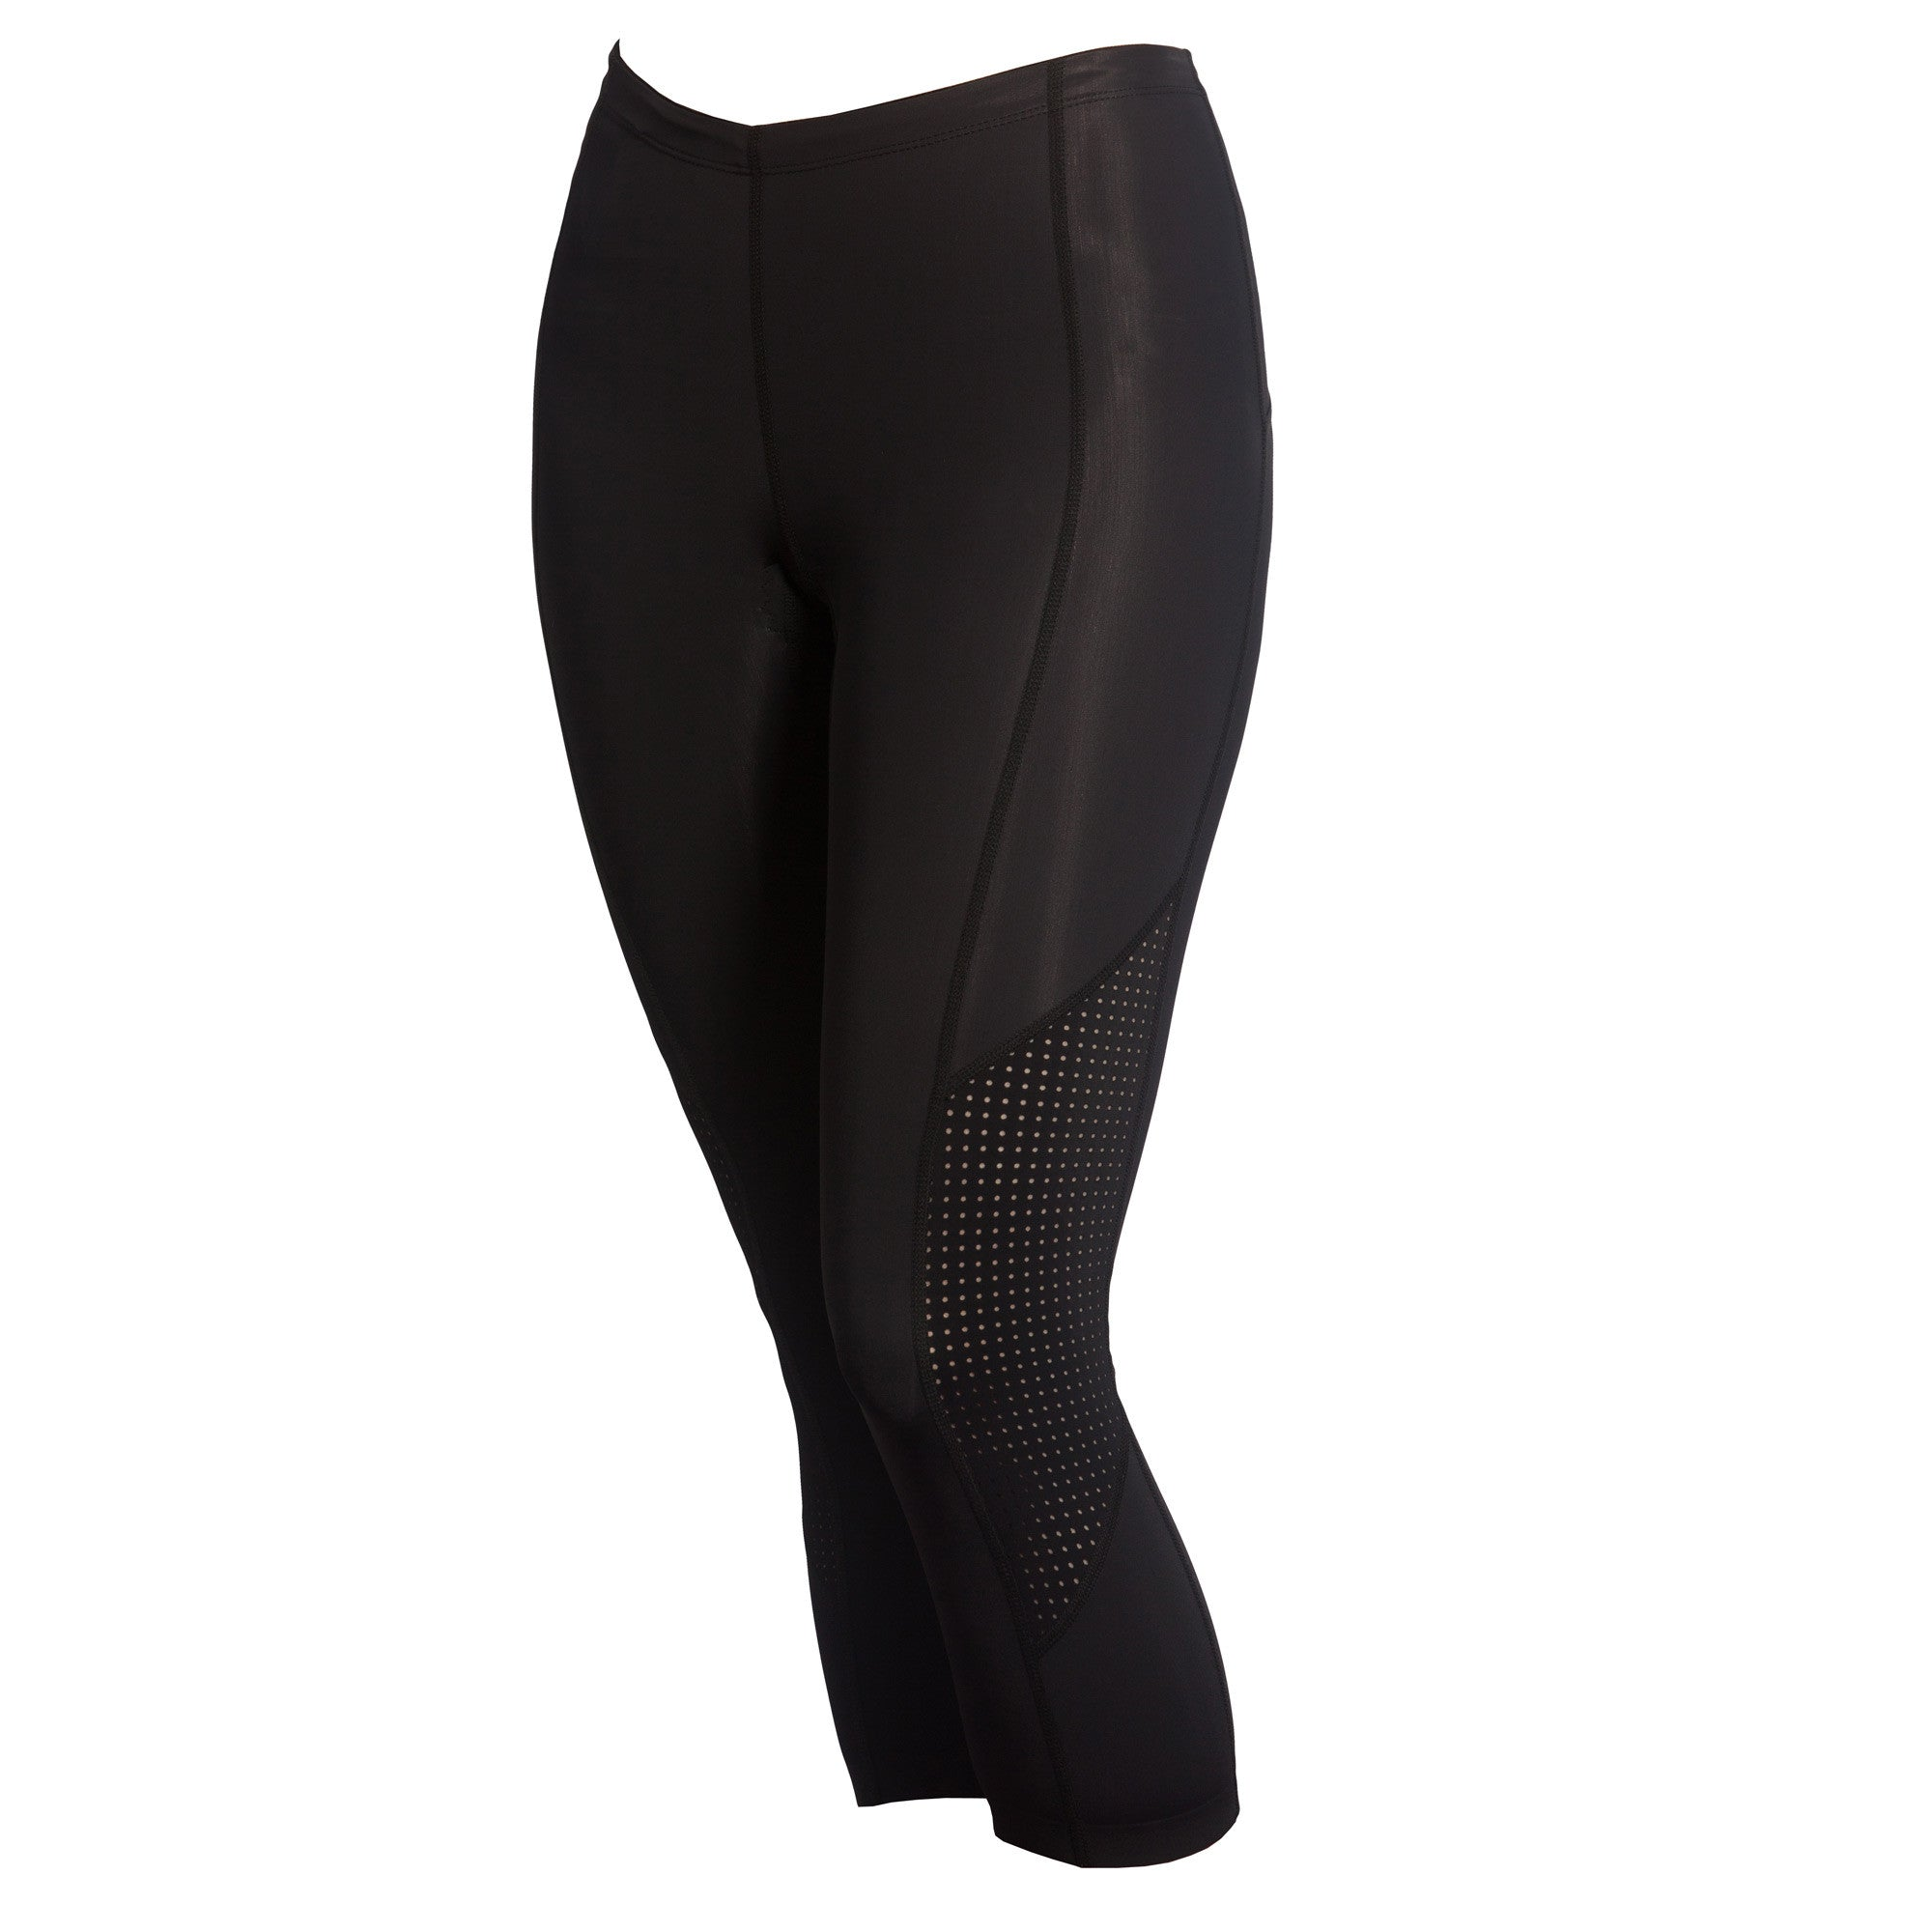 Pace Triathlon Capri - regular waistband